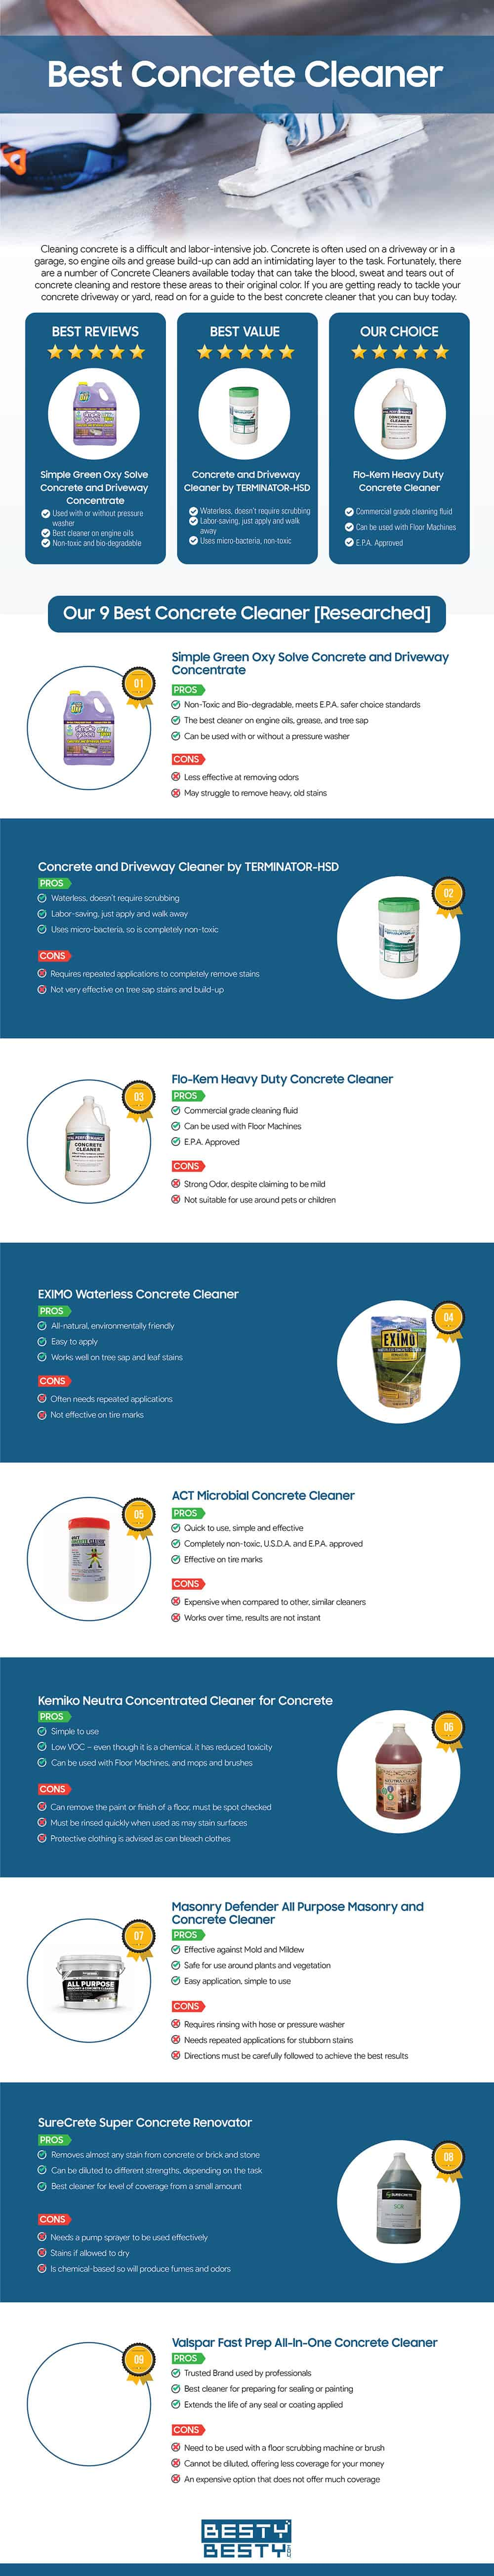 Best Concrete Cleaner infographic by bestybesty.com